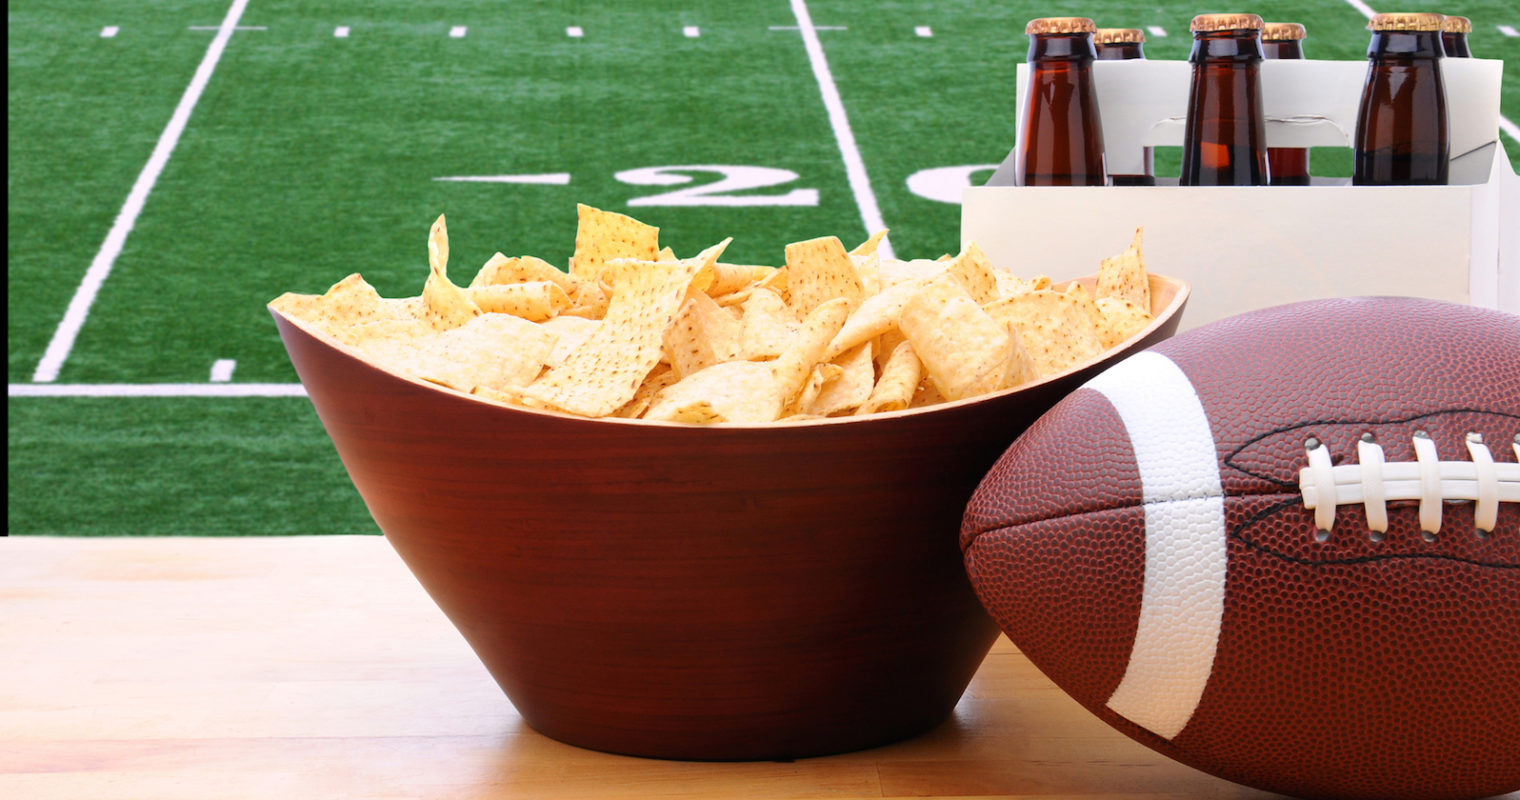 The Top 20 Most Popular Super Bowl Ads on YouTube